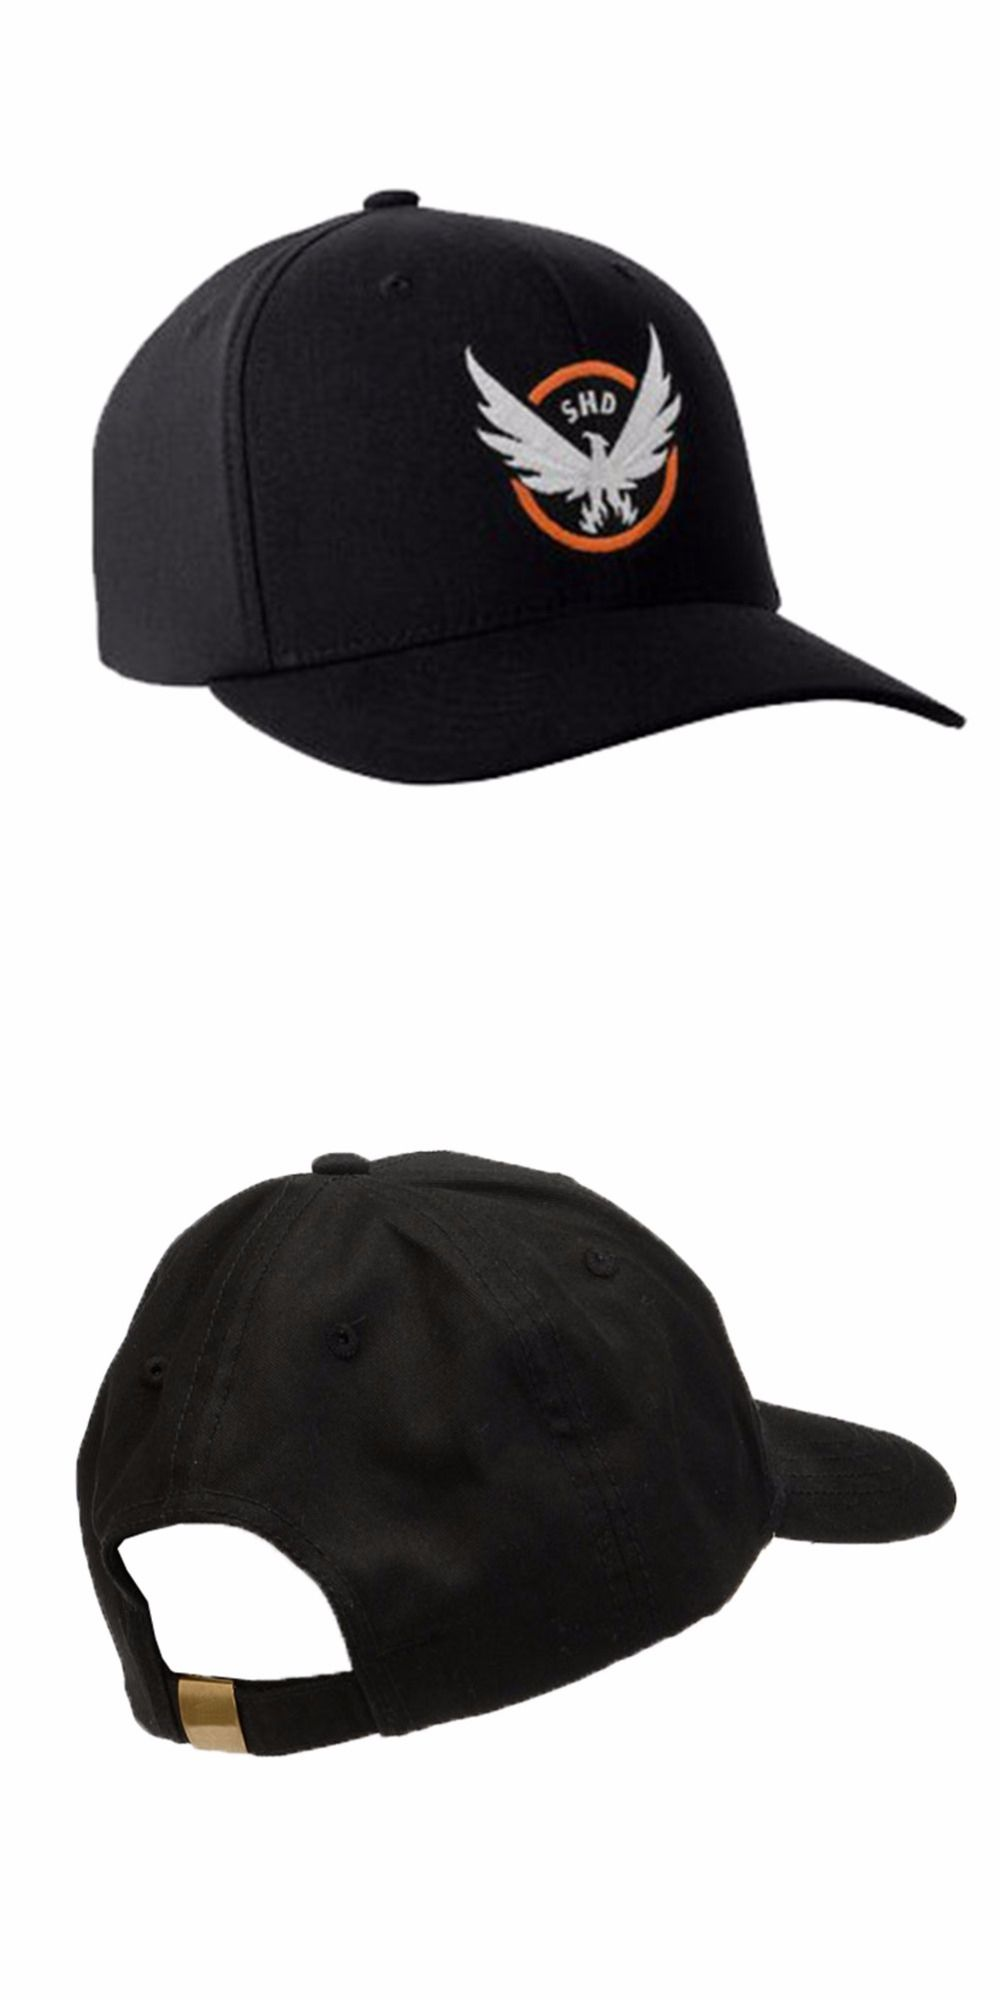 23c3eb9f751 Discover ideas about Tom Clancy. Hot Sale The Division Hat Tom Clancy s  Baseball Cap Snapback Hat Cosplay Mens Rock Cap Adult Size with Adjustable  Buckle